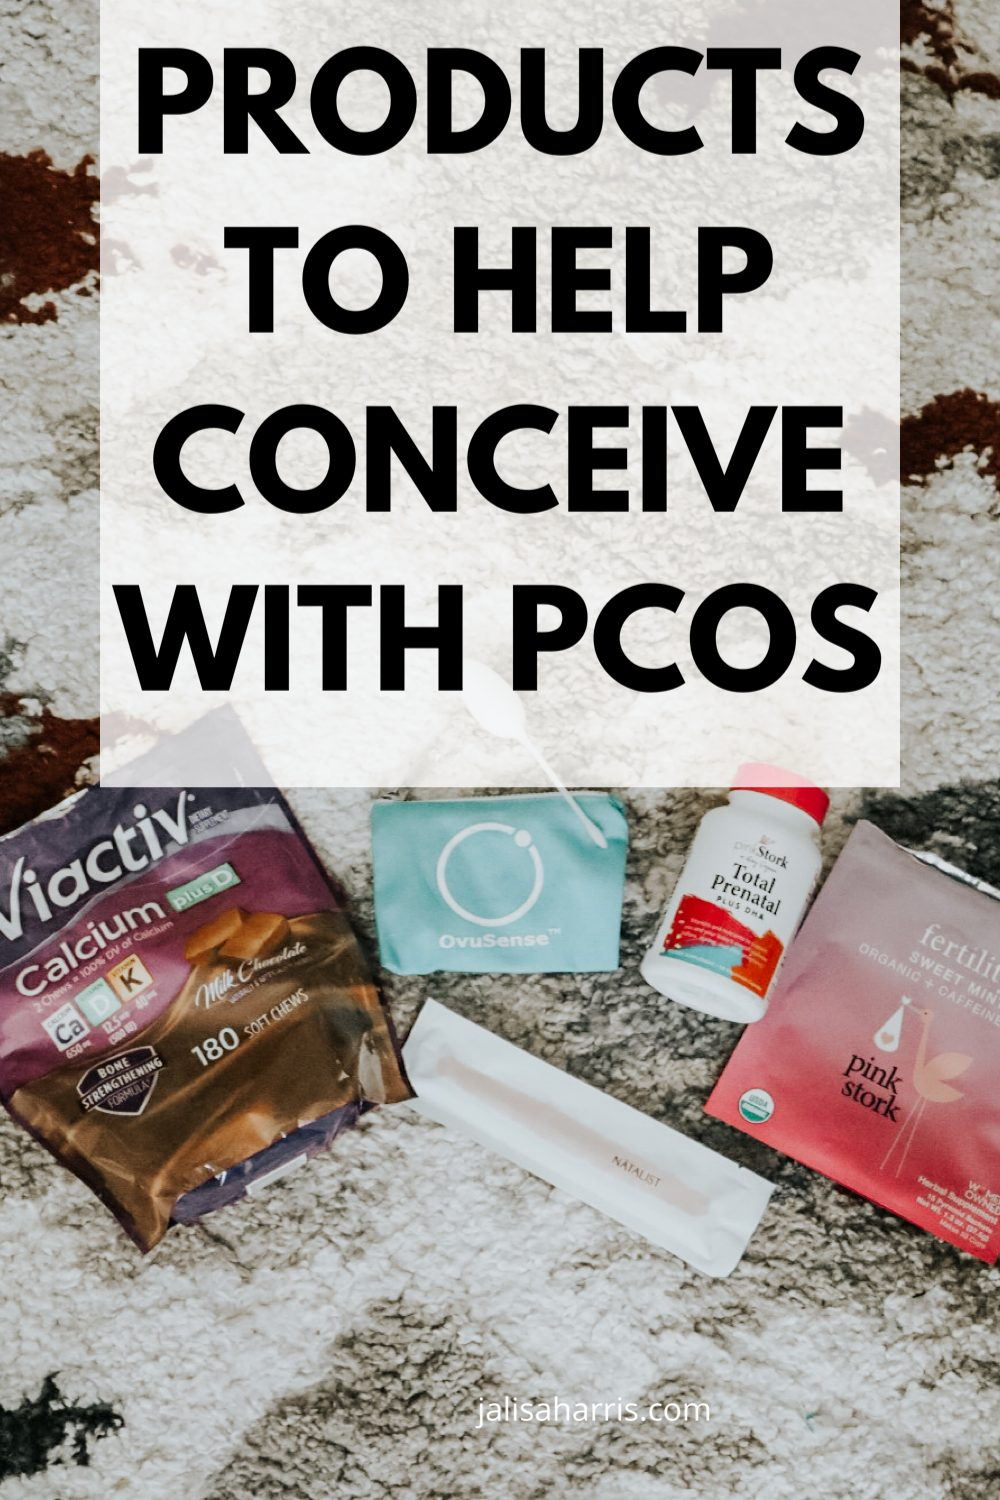 Have you been diagnosed with PCOS? These + more products are ones that I have taken when conceiving with PCOS.